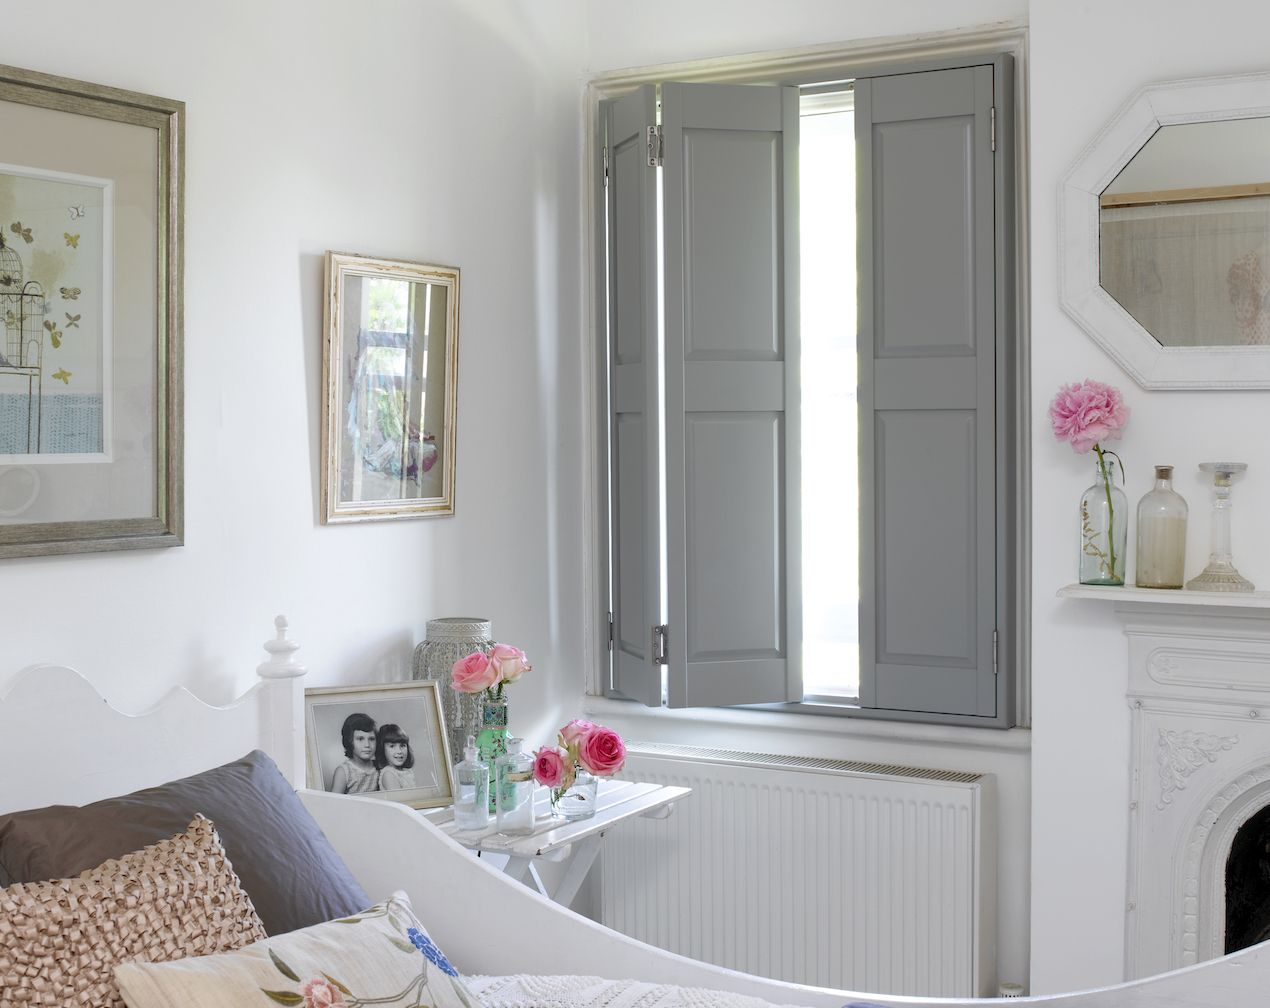 Buyers guide to diy window shutters and a 25 discount